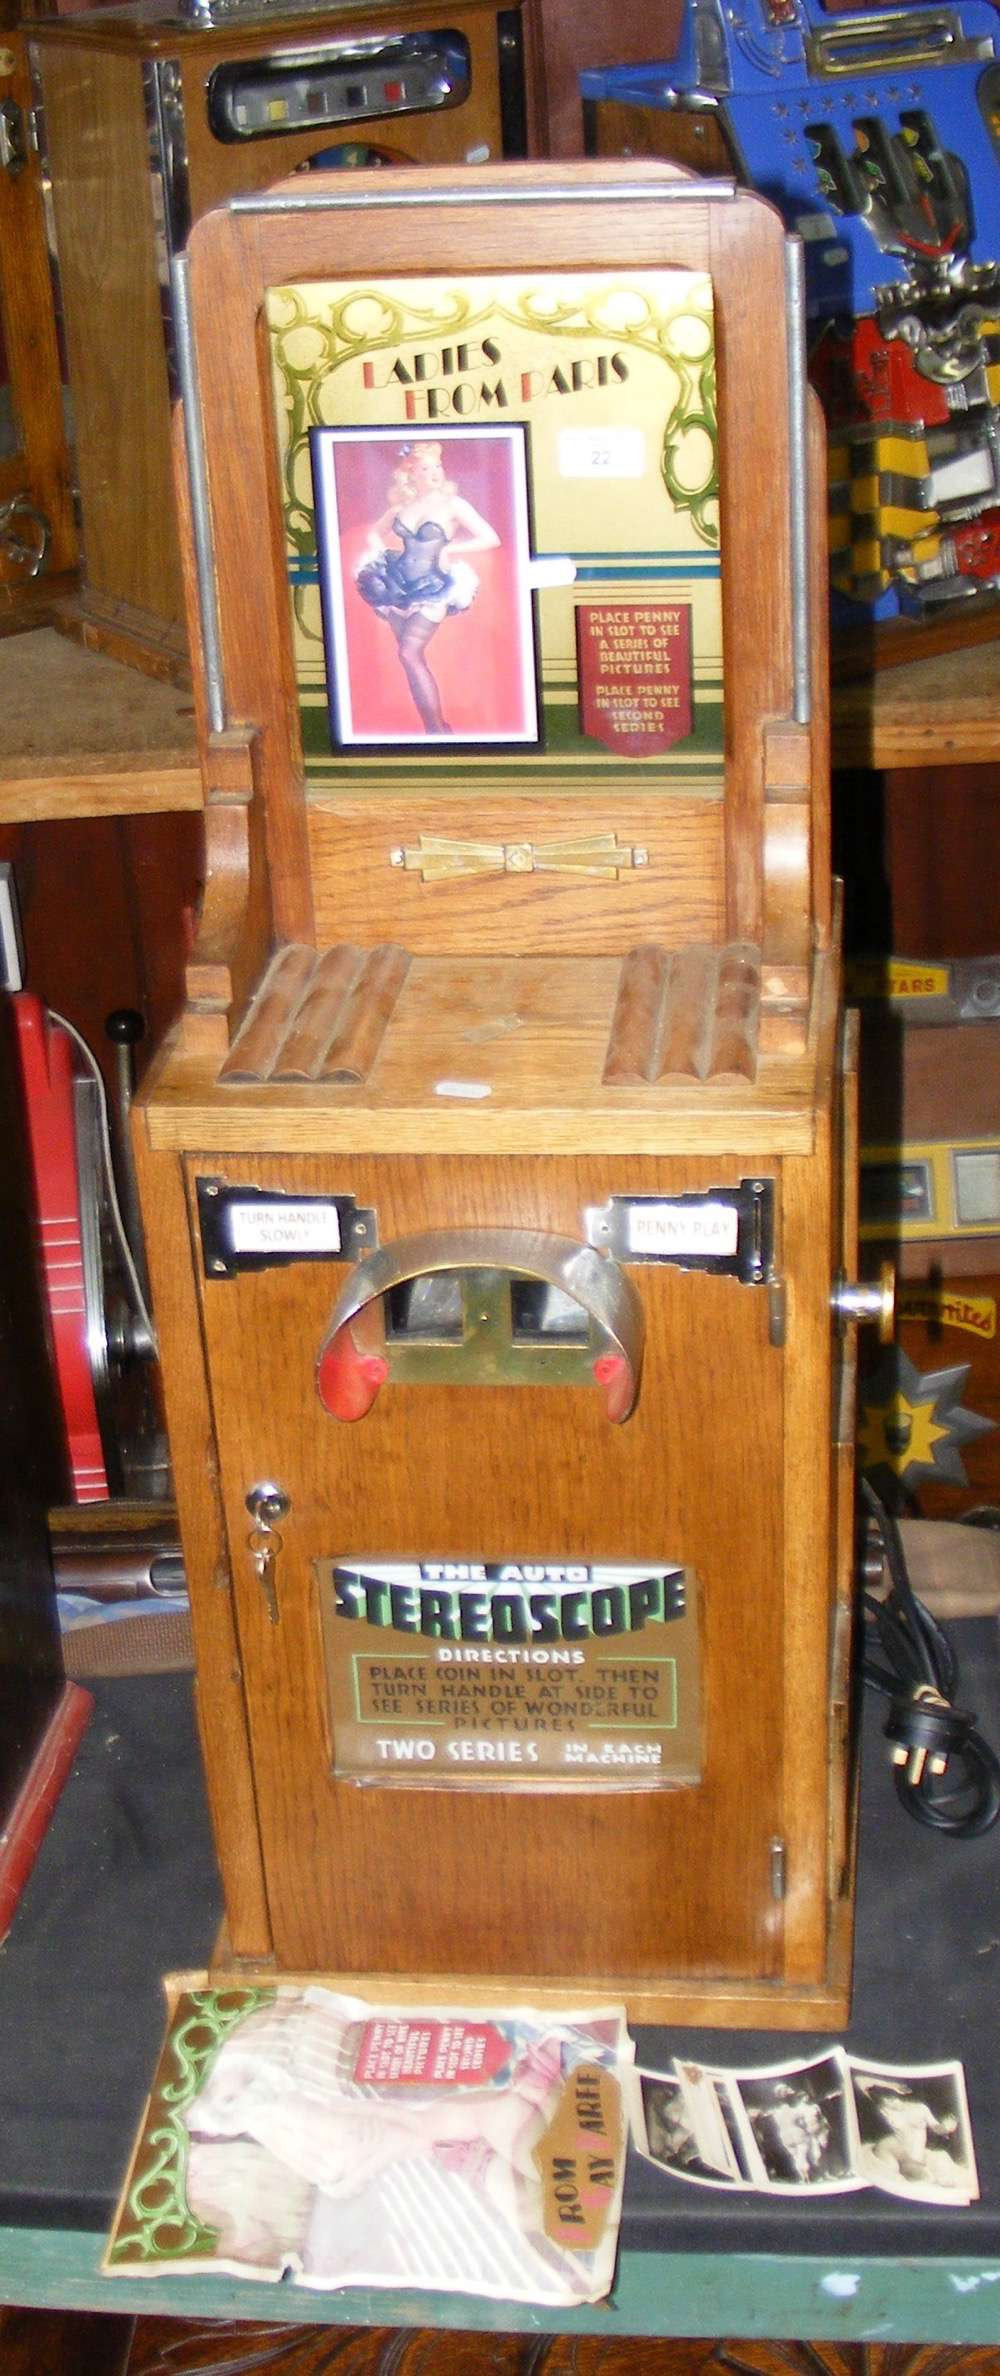 "Lot 22 - A Stereoscope amusement arcade coin operated viewer ""Ladies From Paris"""